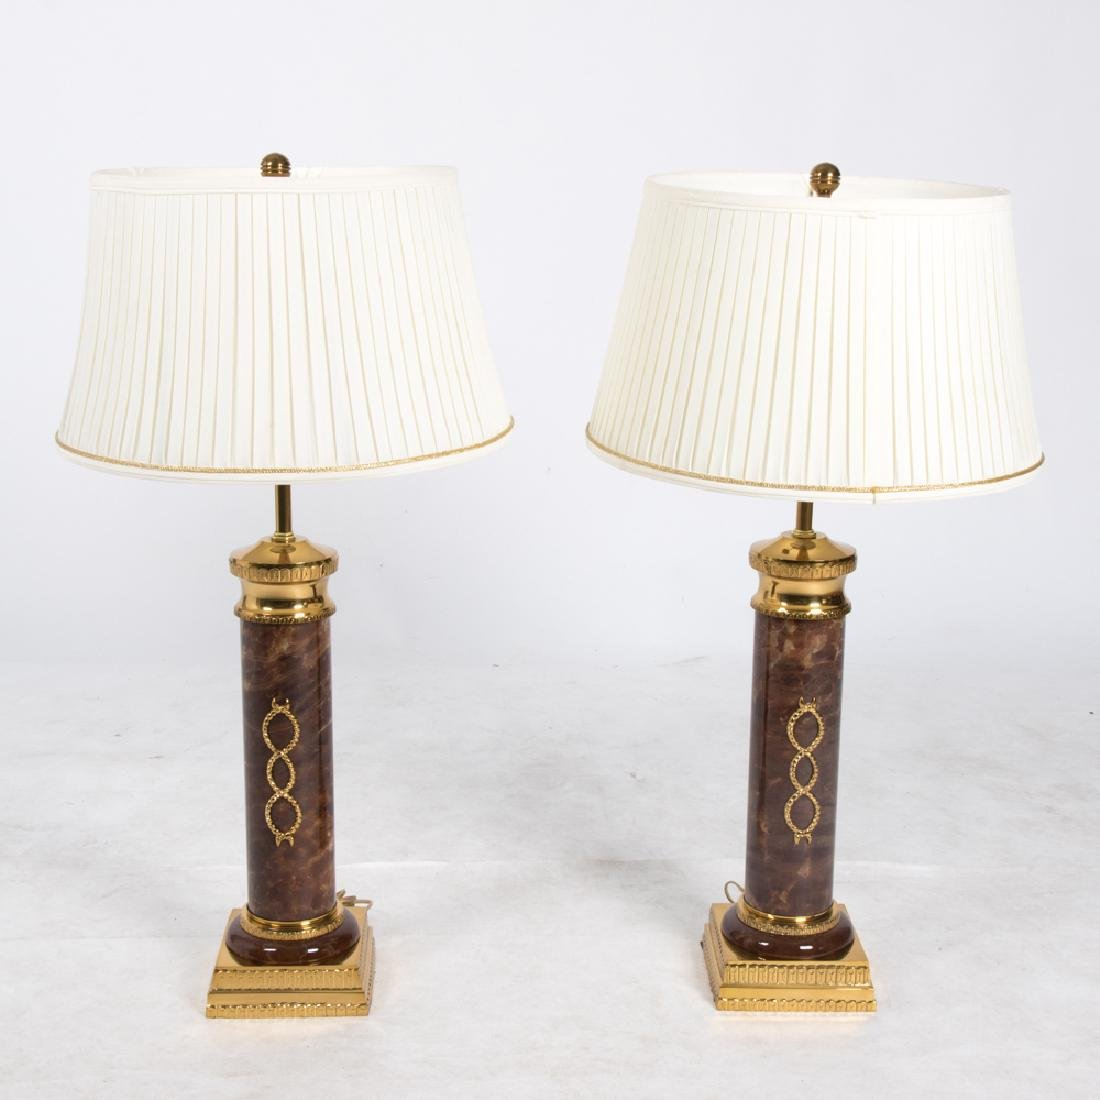 A Pair of Neoclassical Style Faux Marble and Brass